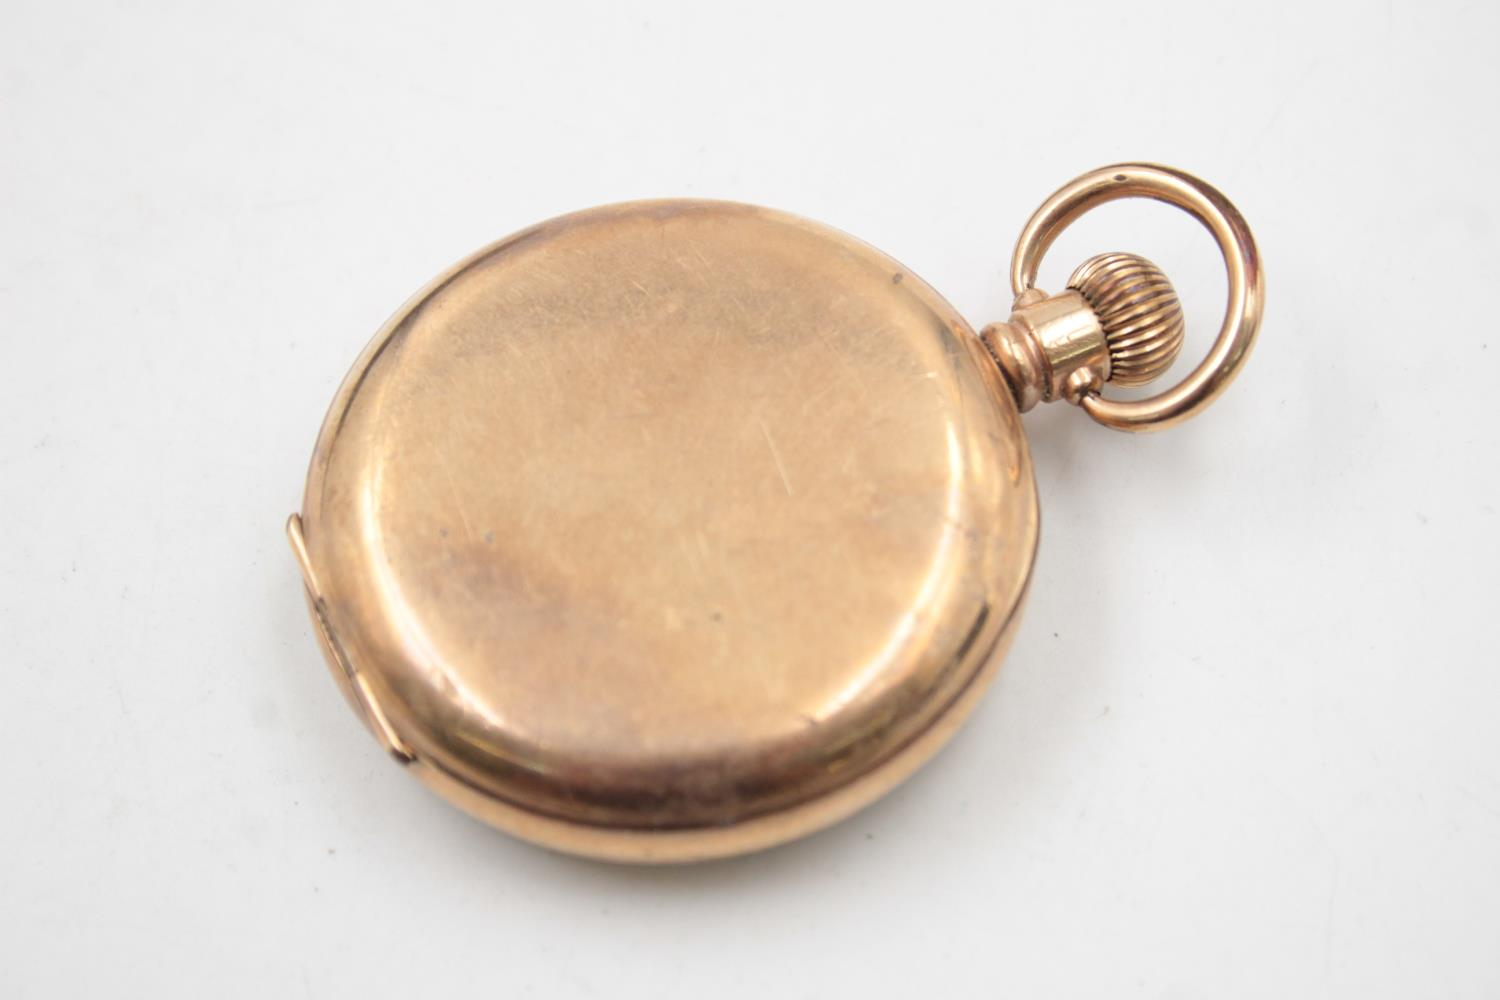 Vintage Gents WALTHAM Rolled Gold Open Face POCKET WATCH Hand-Wind (102g) - Image 3 of 6